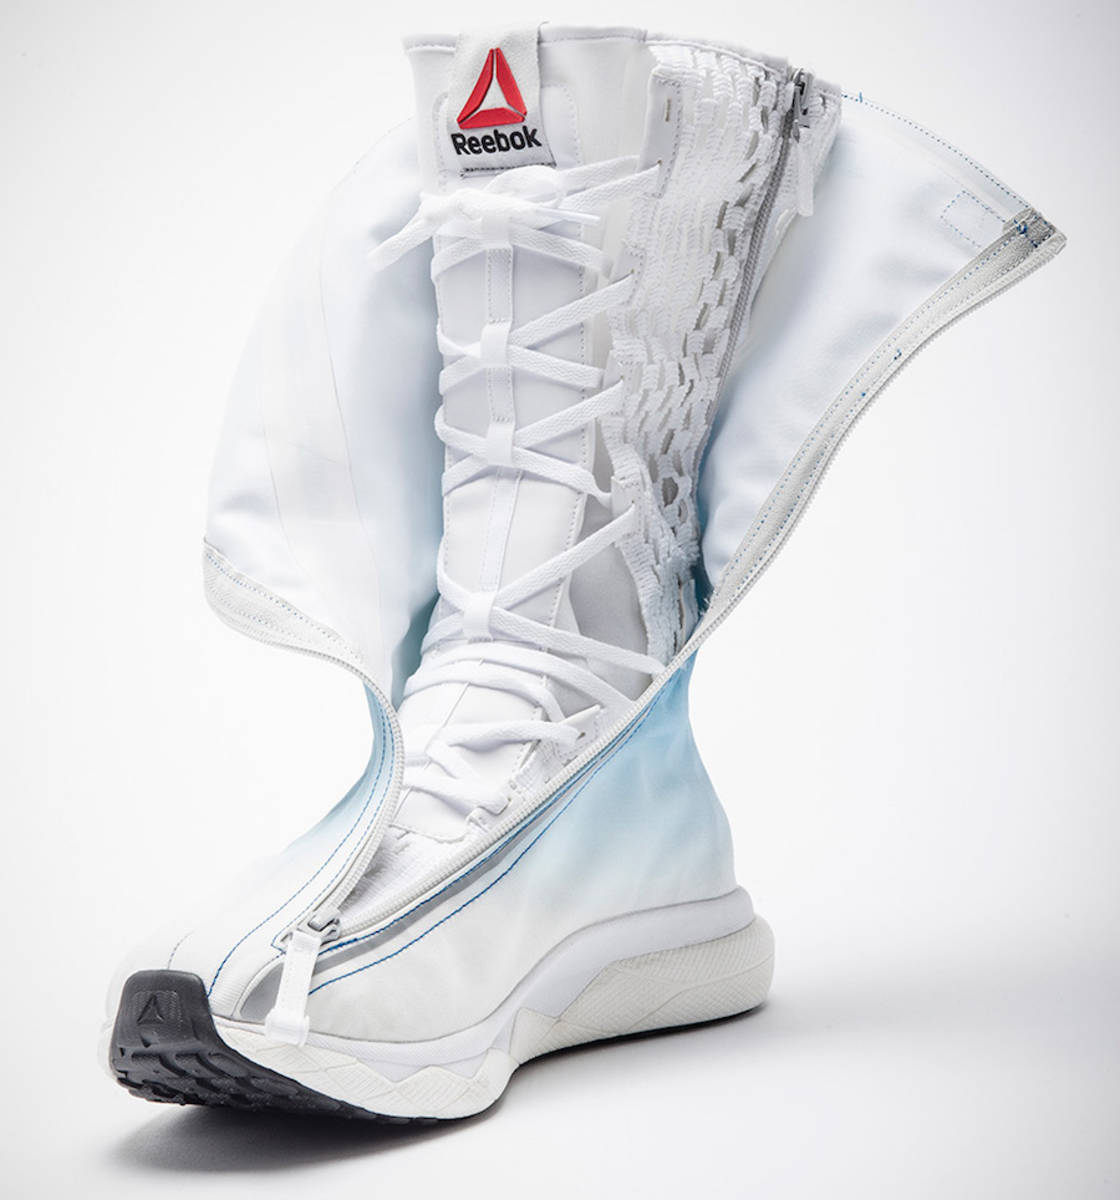 SB-01 Sneakers – Reebok is developing shoes for astronauts